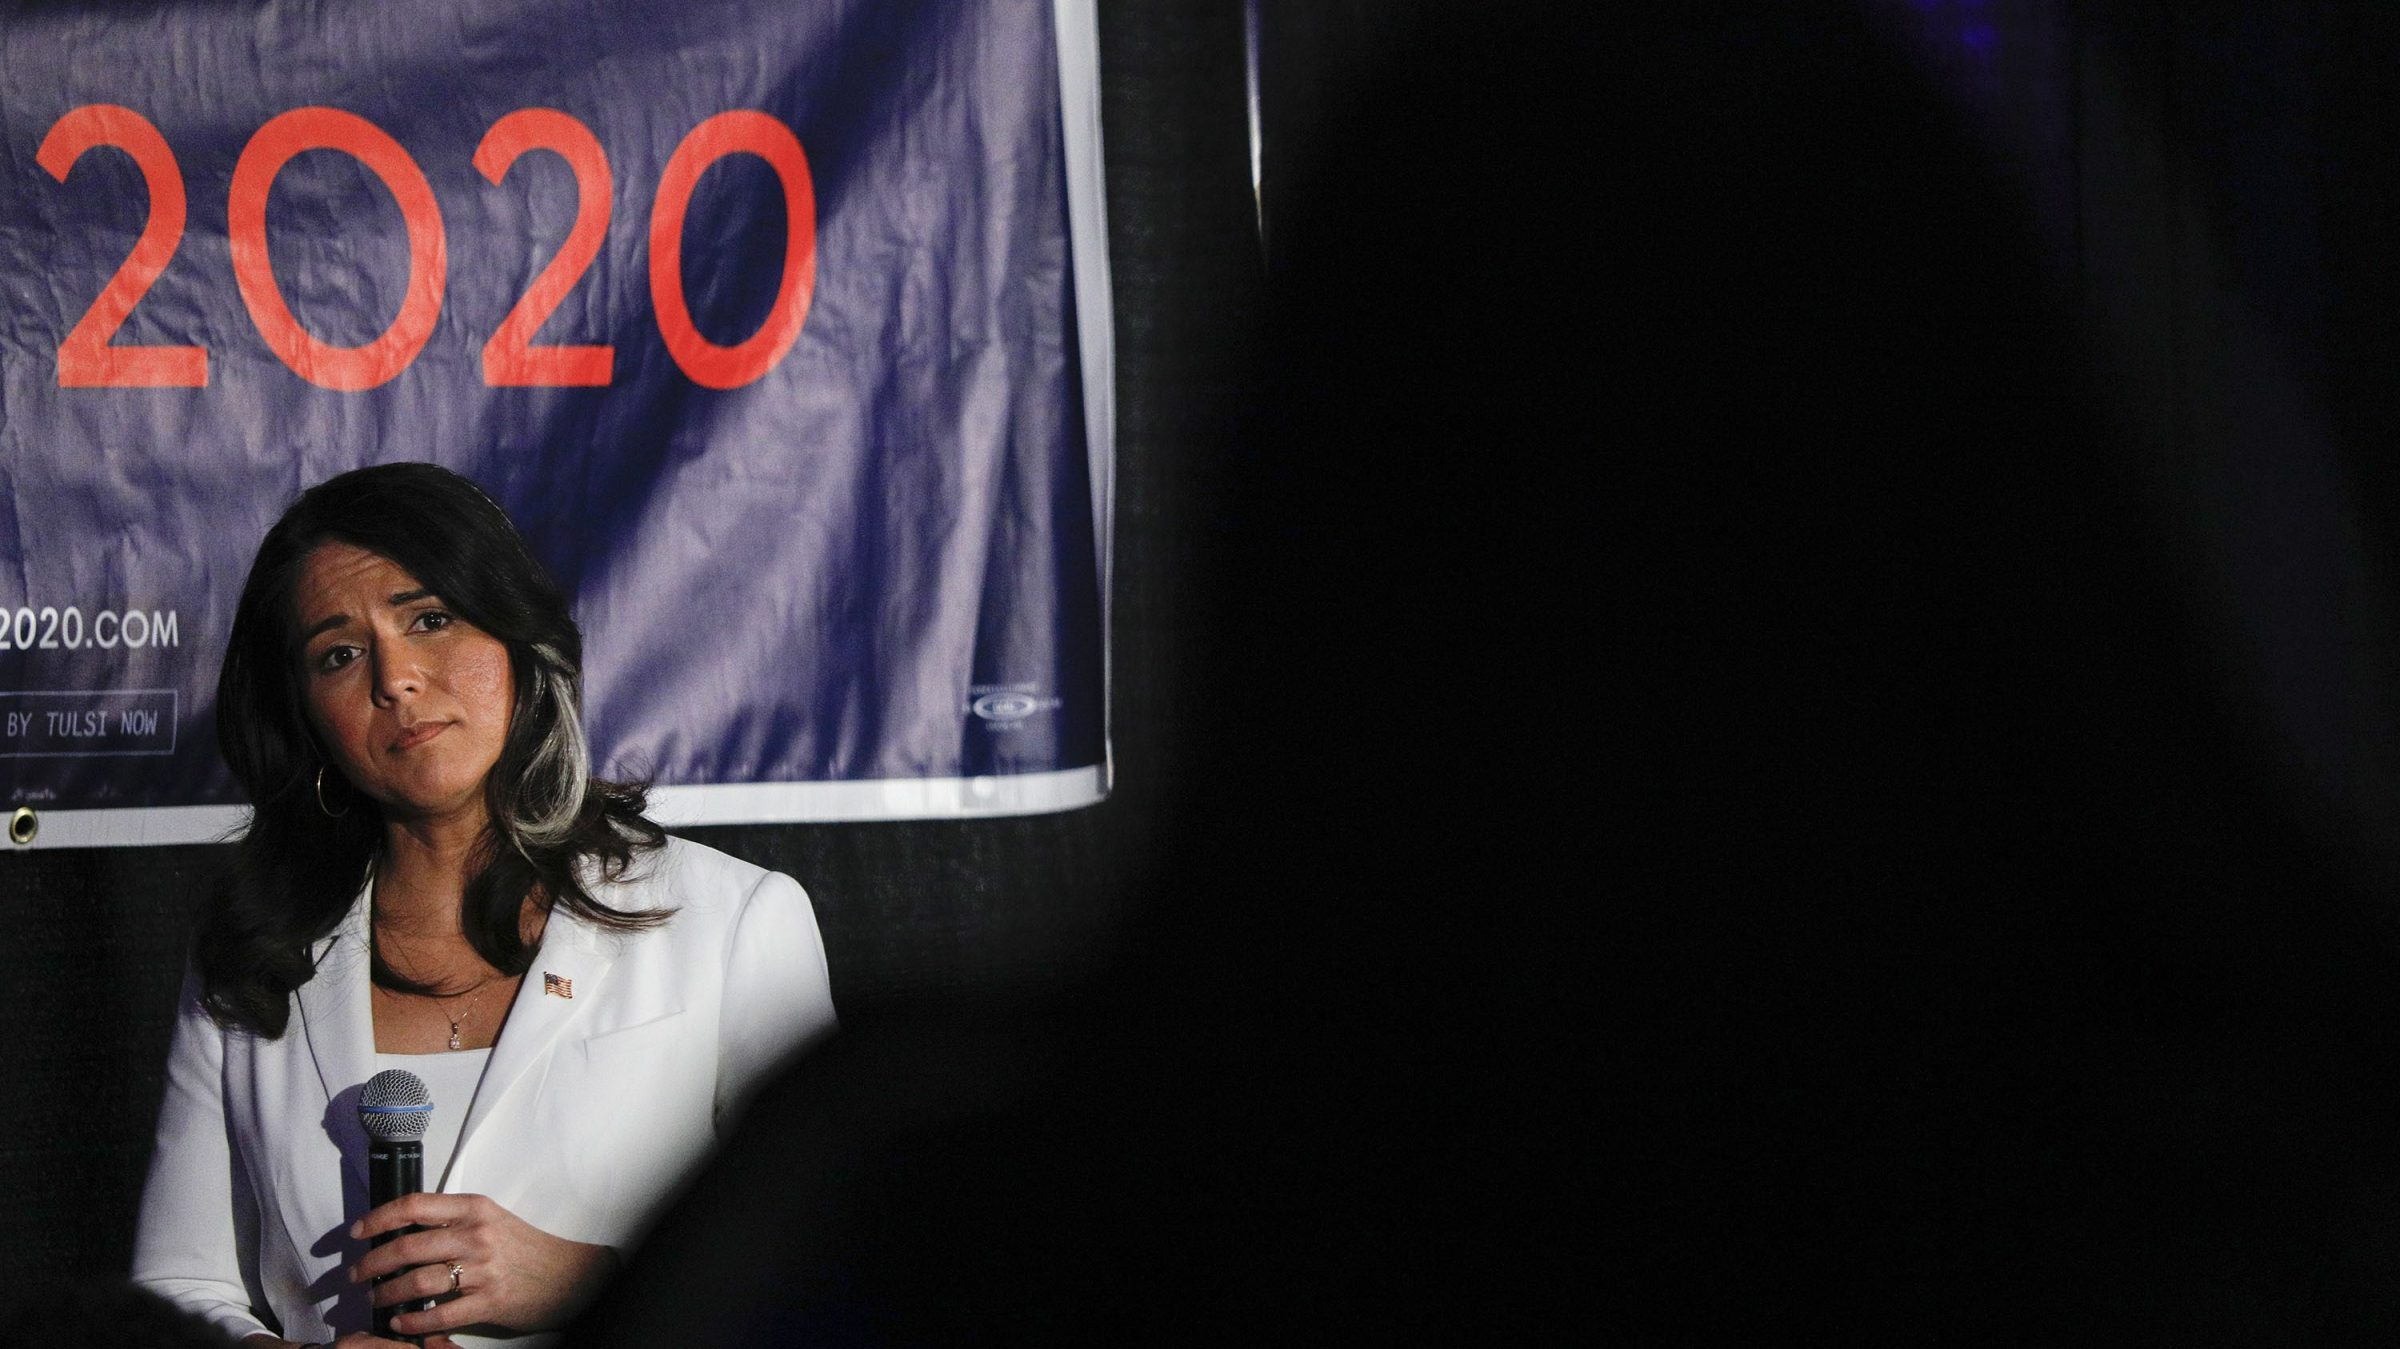 Democratic presidential candidate U.S. Representative Tulsi Gabbard (D-HI) listens to a question at a Town Hall meeting on Super Tuesday Primary night on March 3, 2020 in Detroit, Michigan.